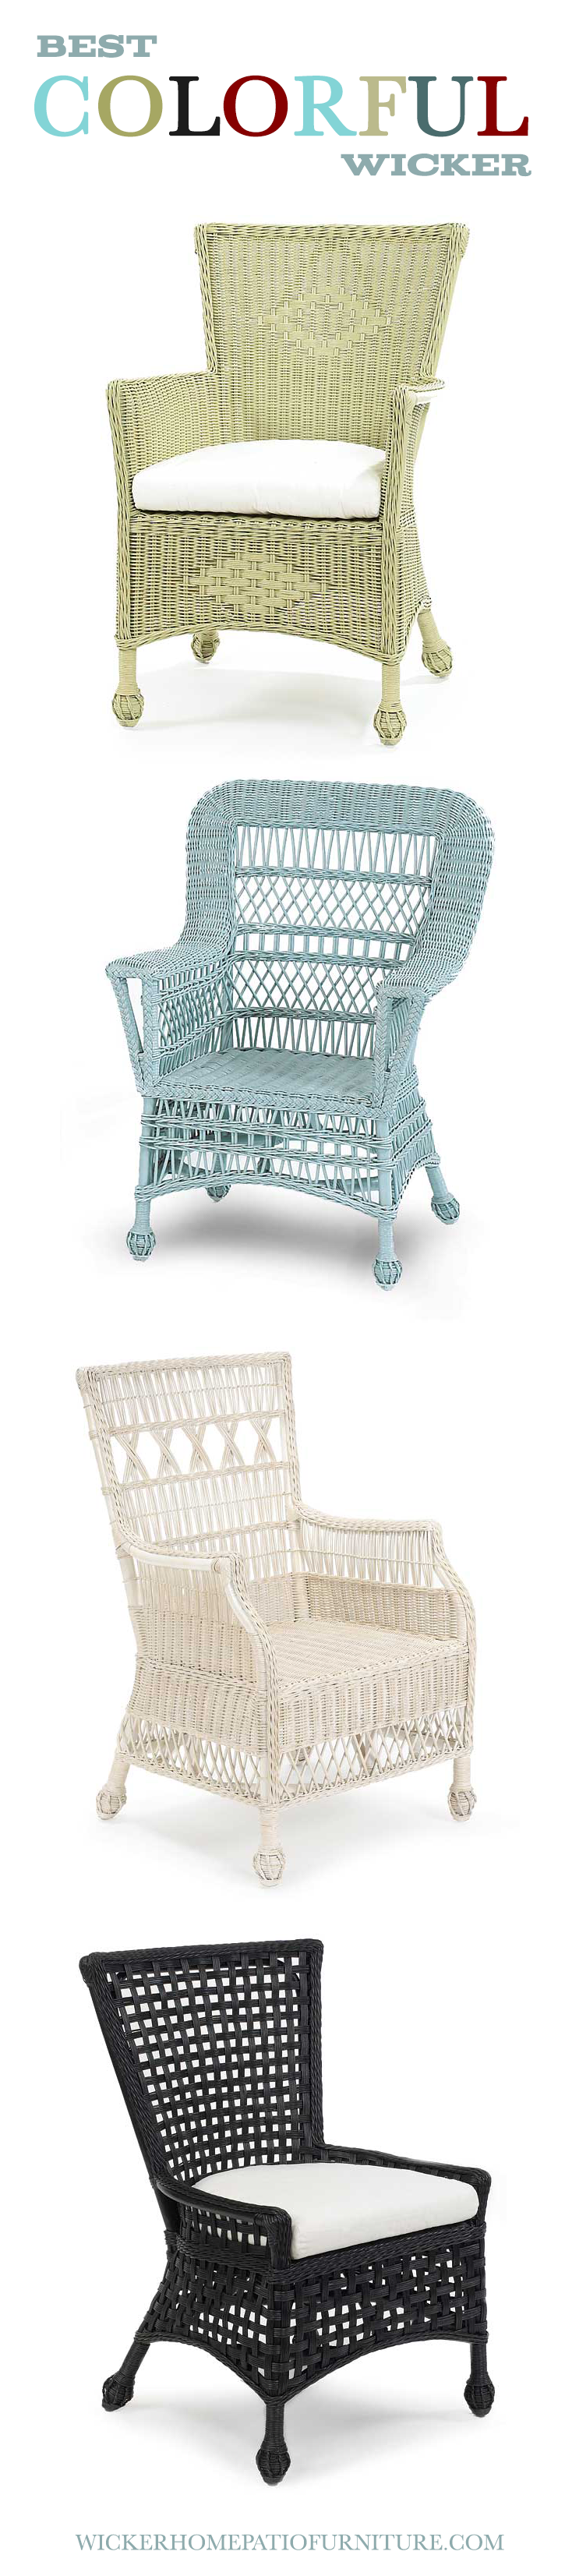 Indoor Wicker Chairs Outdoor Chair Cushions Wicker Chairs Wicker Furniture